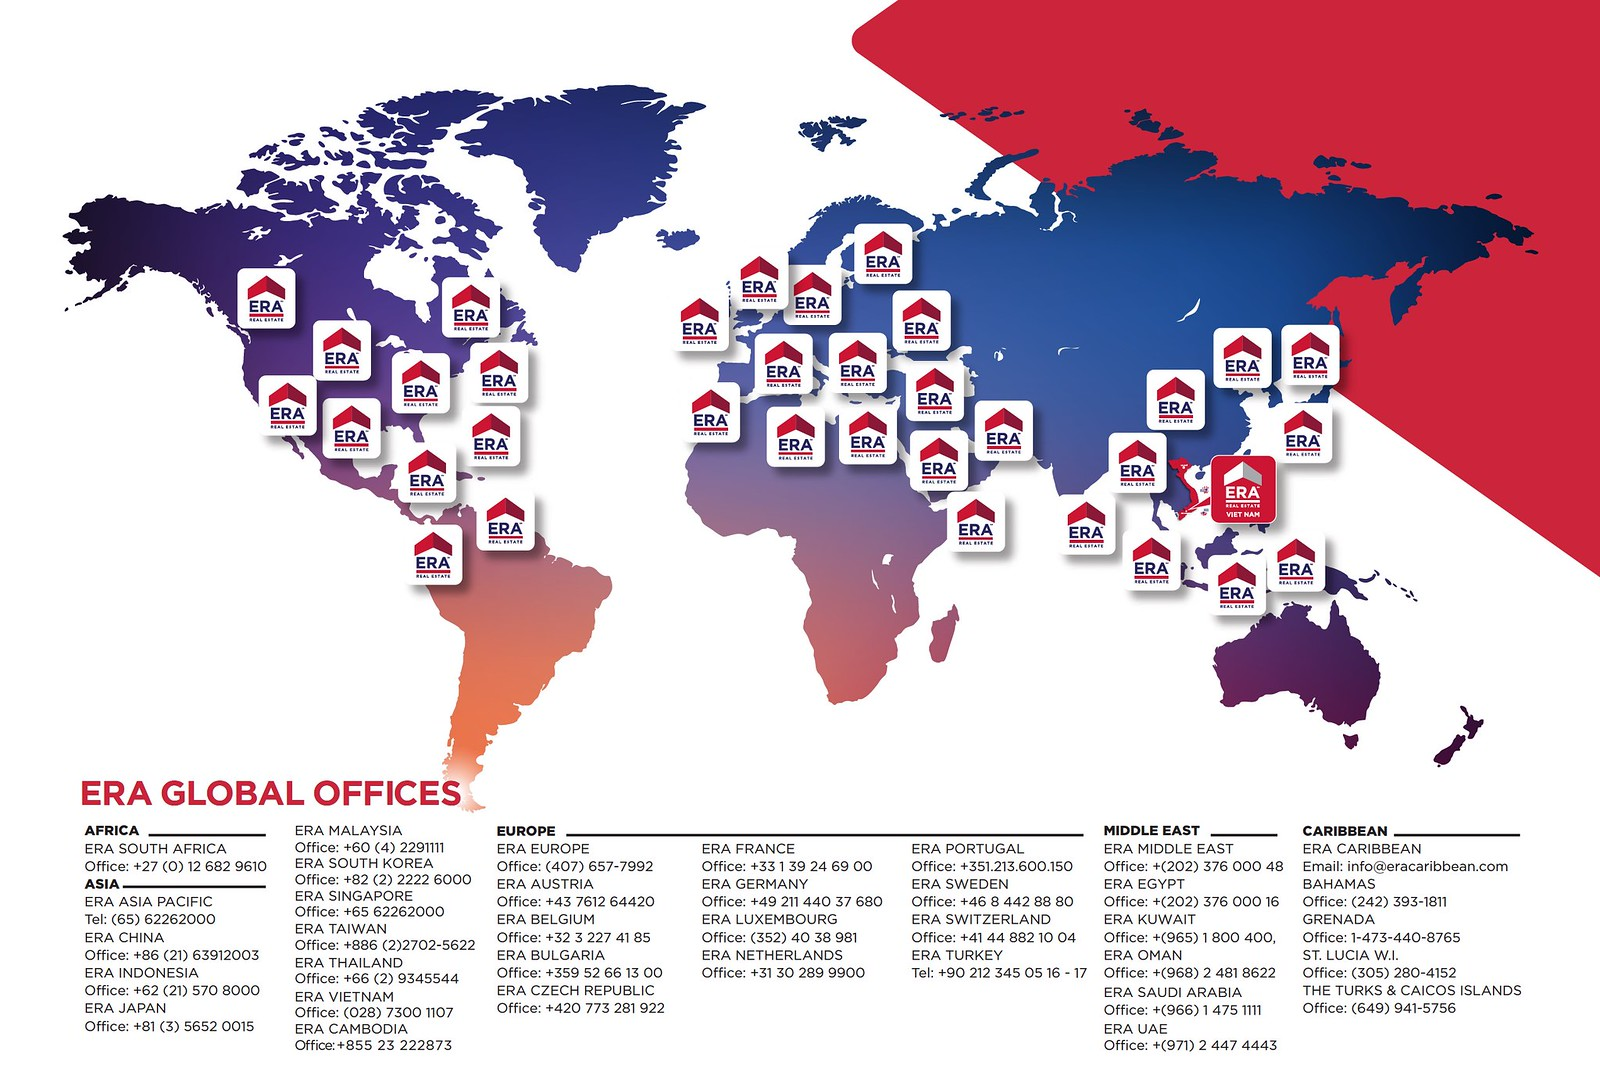 ERA Global Offices